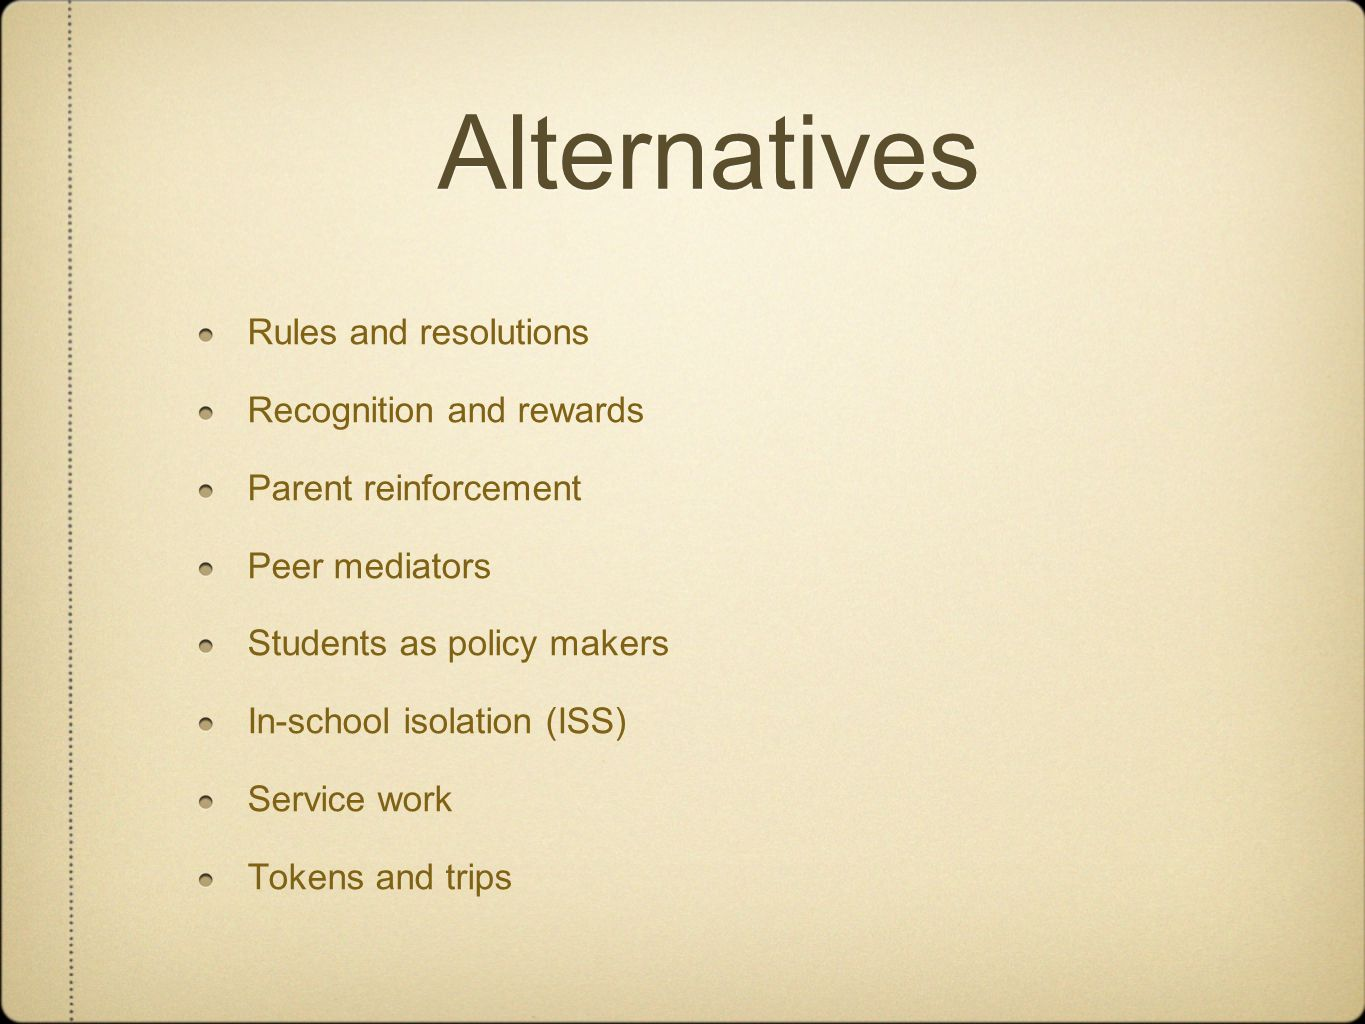 Alternatives Rules and resolutions Recognition and rewards Parent reinforcement Peer mediators Students as policy makers In-school isolation (ISS) Service work Tokens and trips